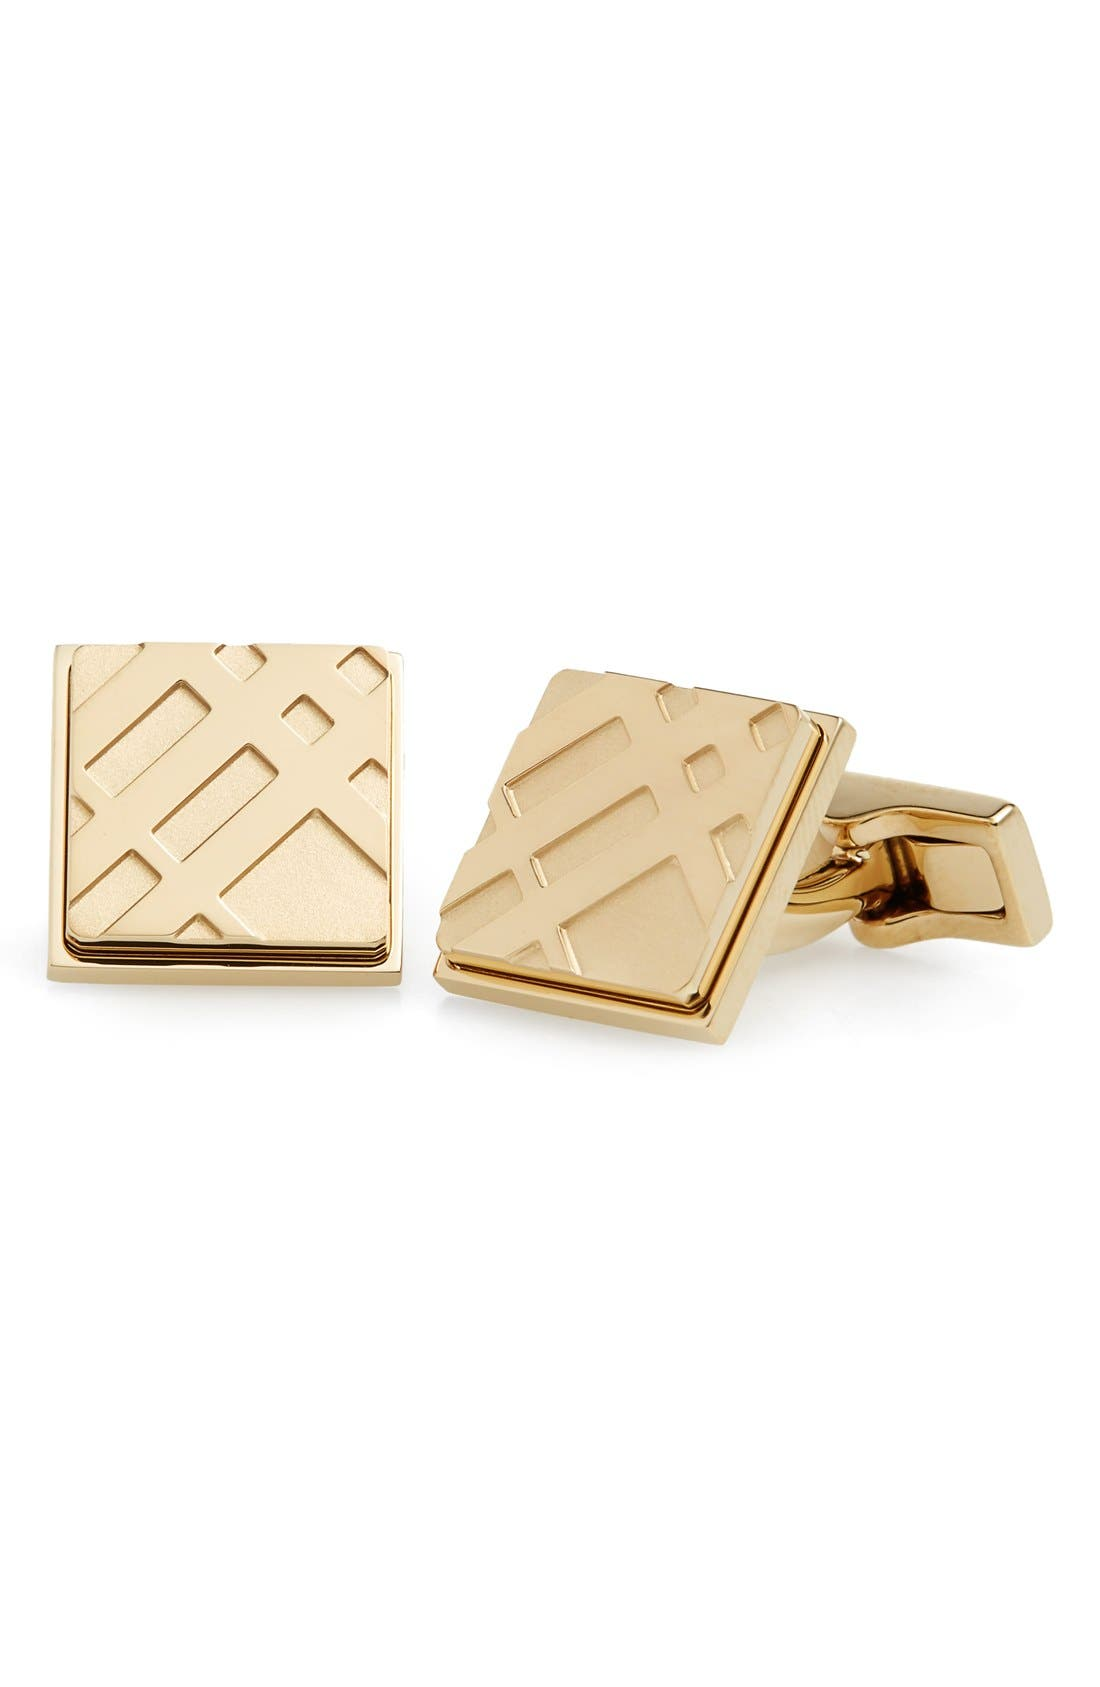 Main Image - Burberry Square Cuff Links